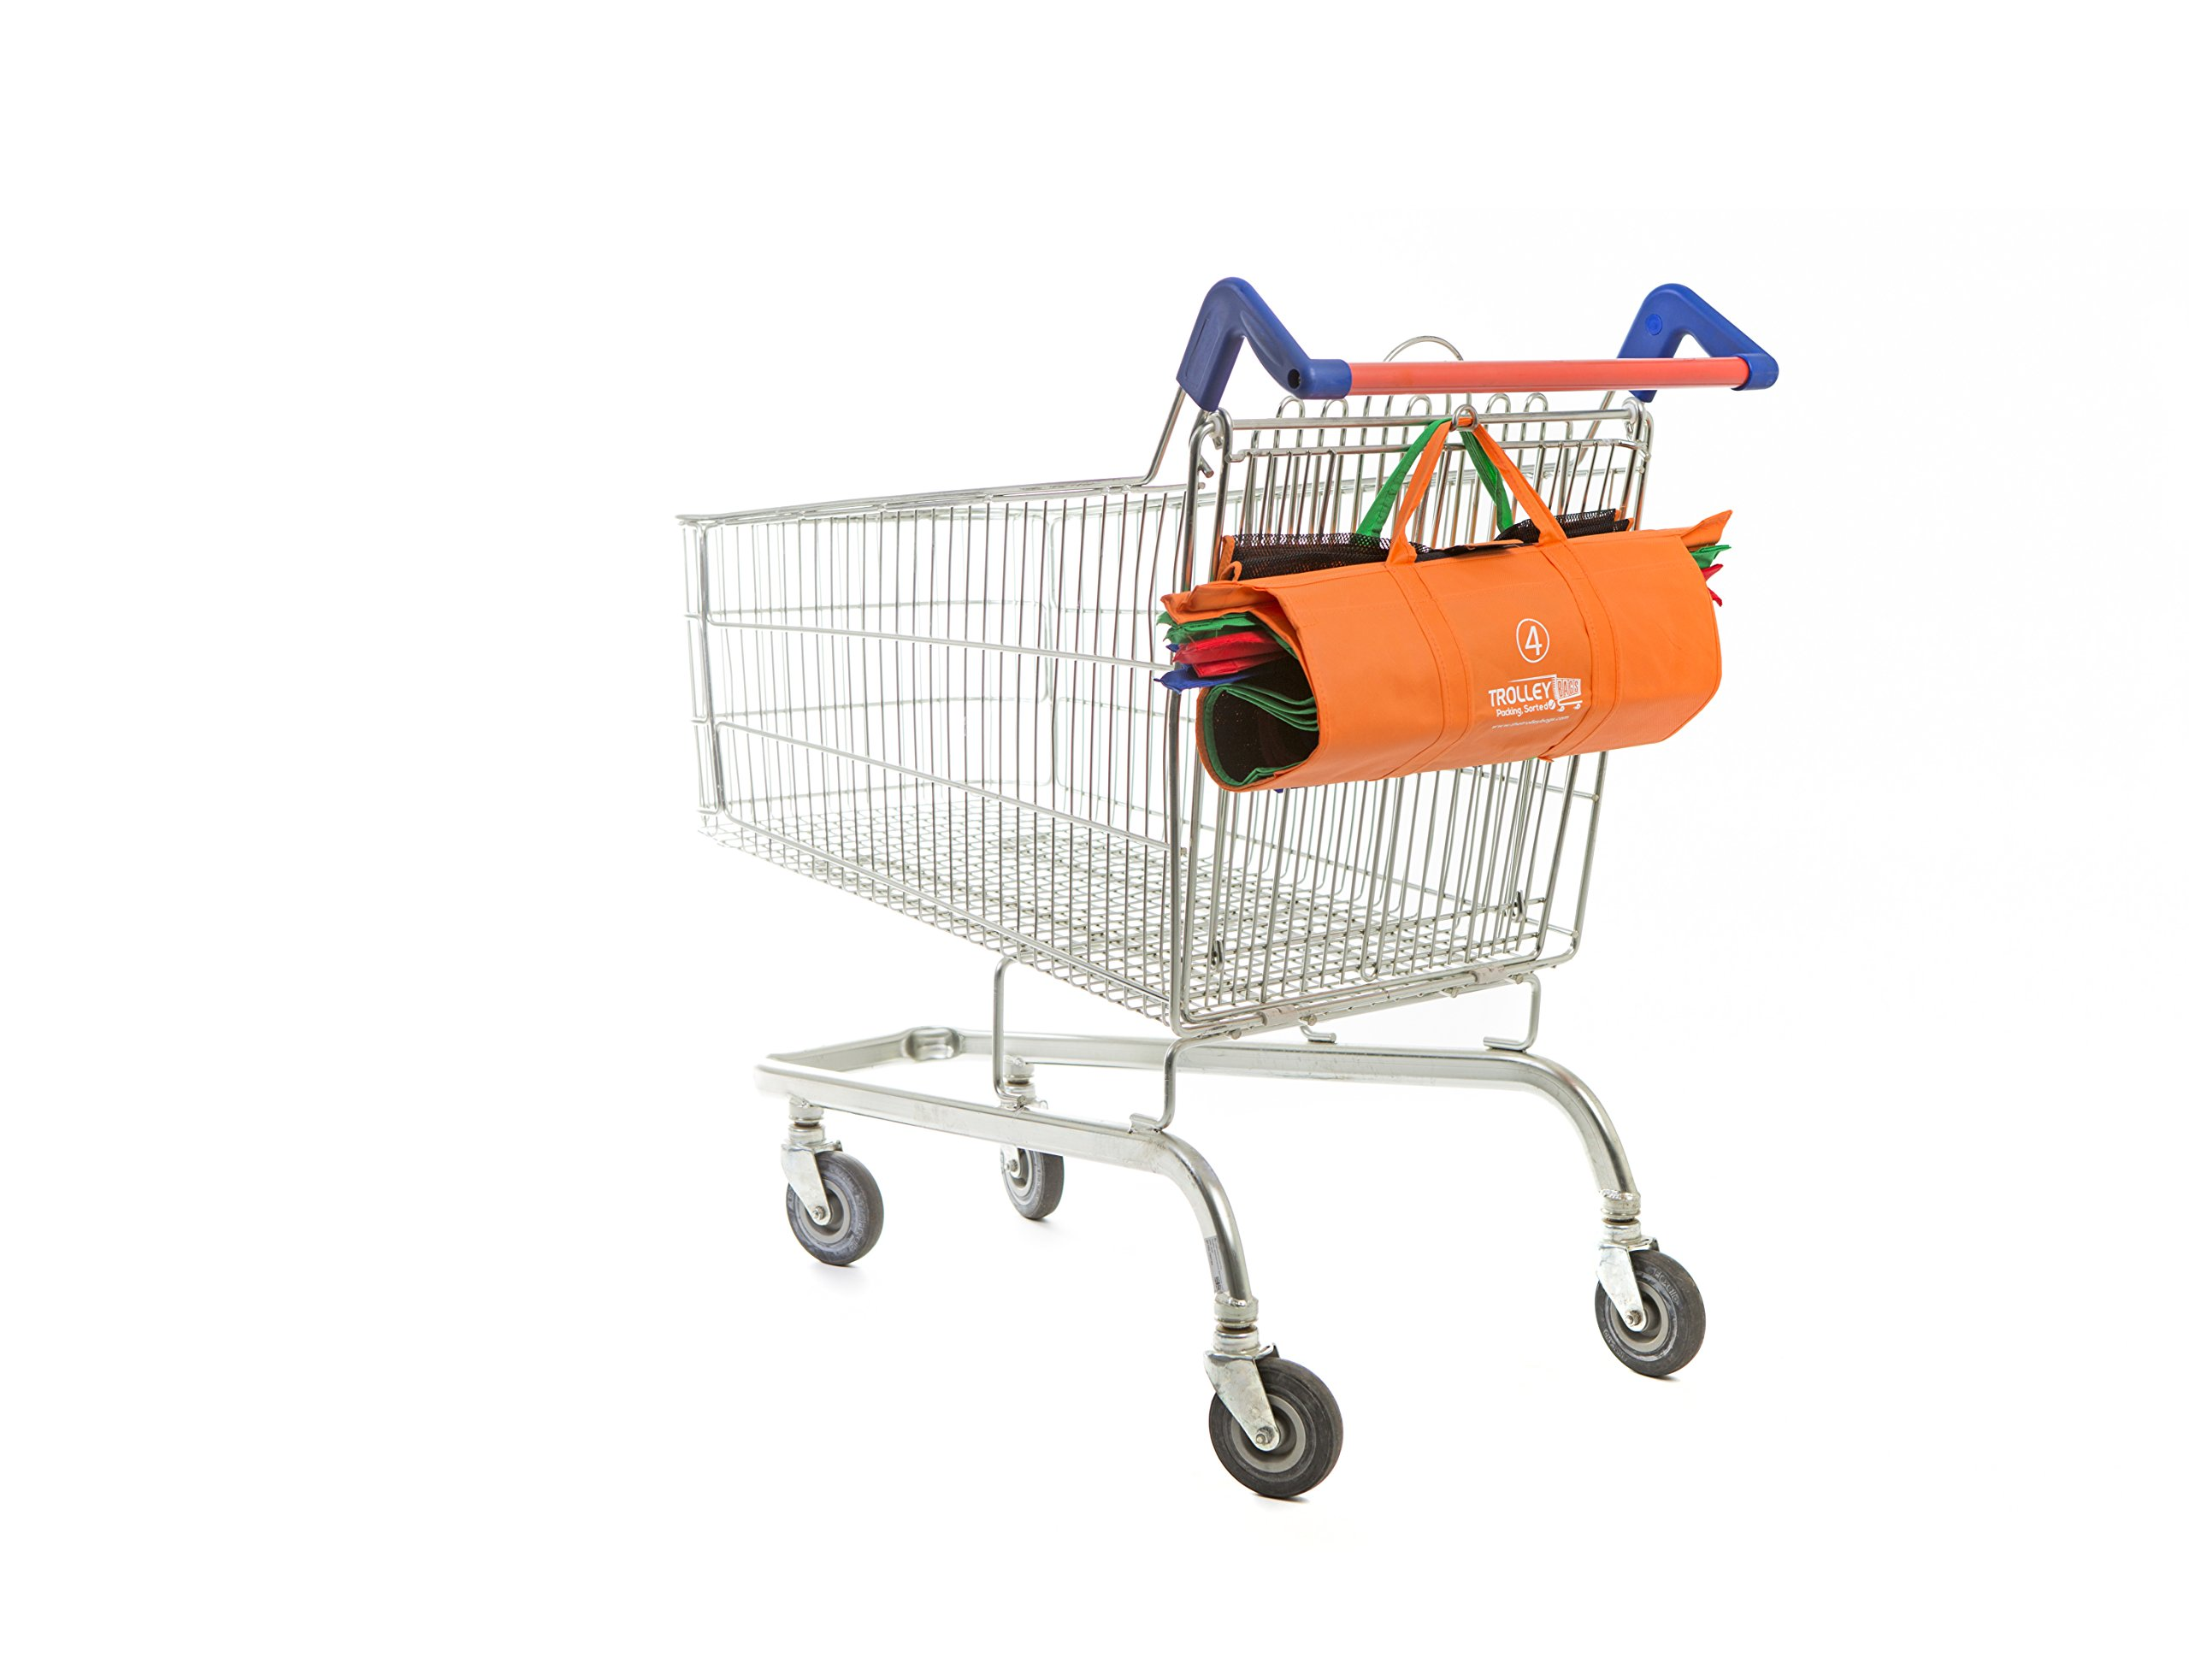 Trolley Bags - Reusable Eco Friendly Grocery Bags to Easily and Safely Bag your Groceries From Your Cart. Sized for Standard Grocery Carts. Reusable Cart Bags. (Standard Cart Size) by Trolley Bags (Image #5)